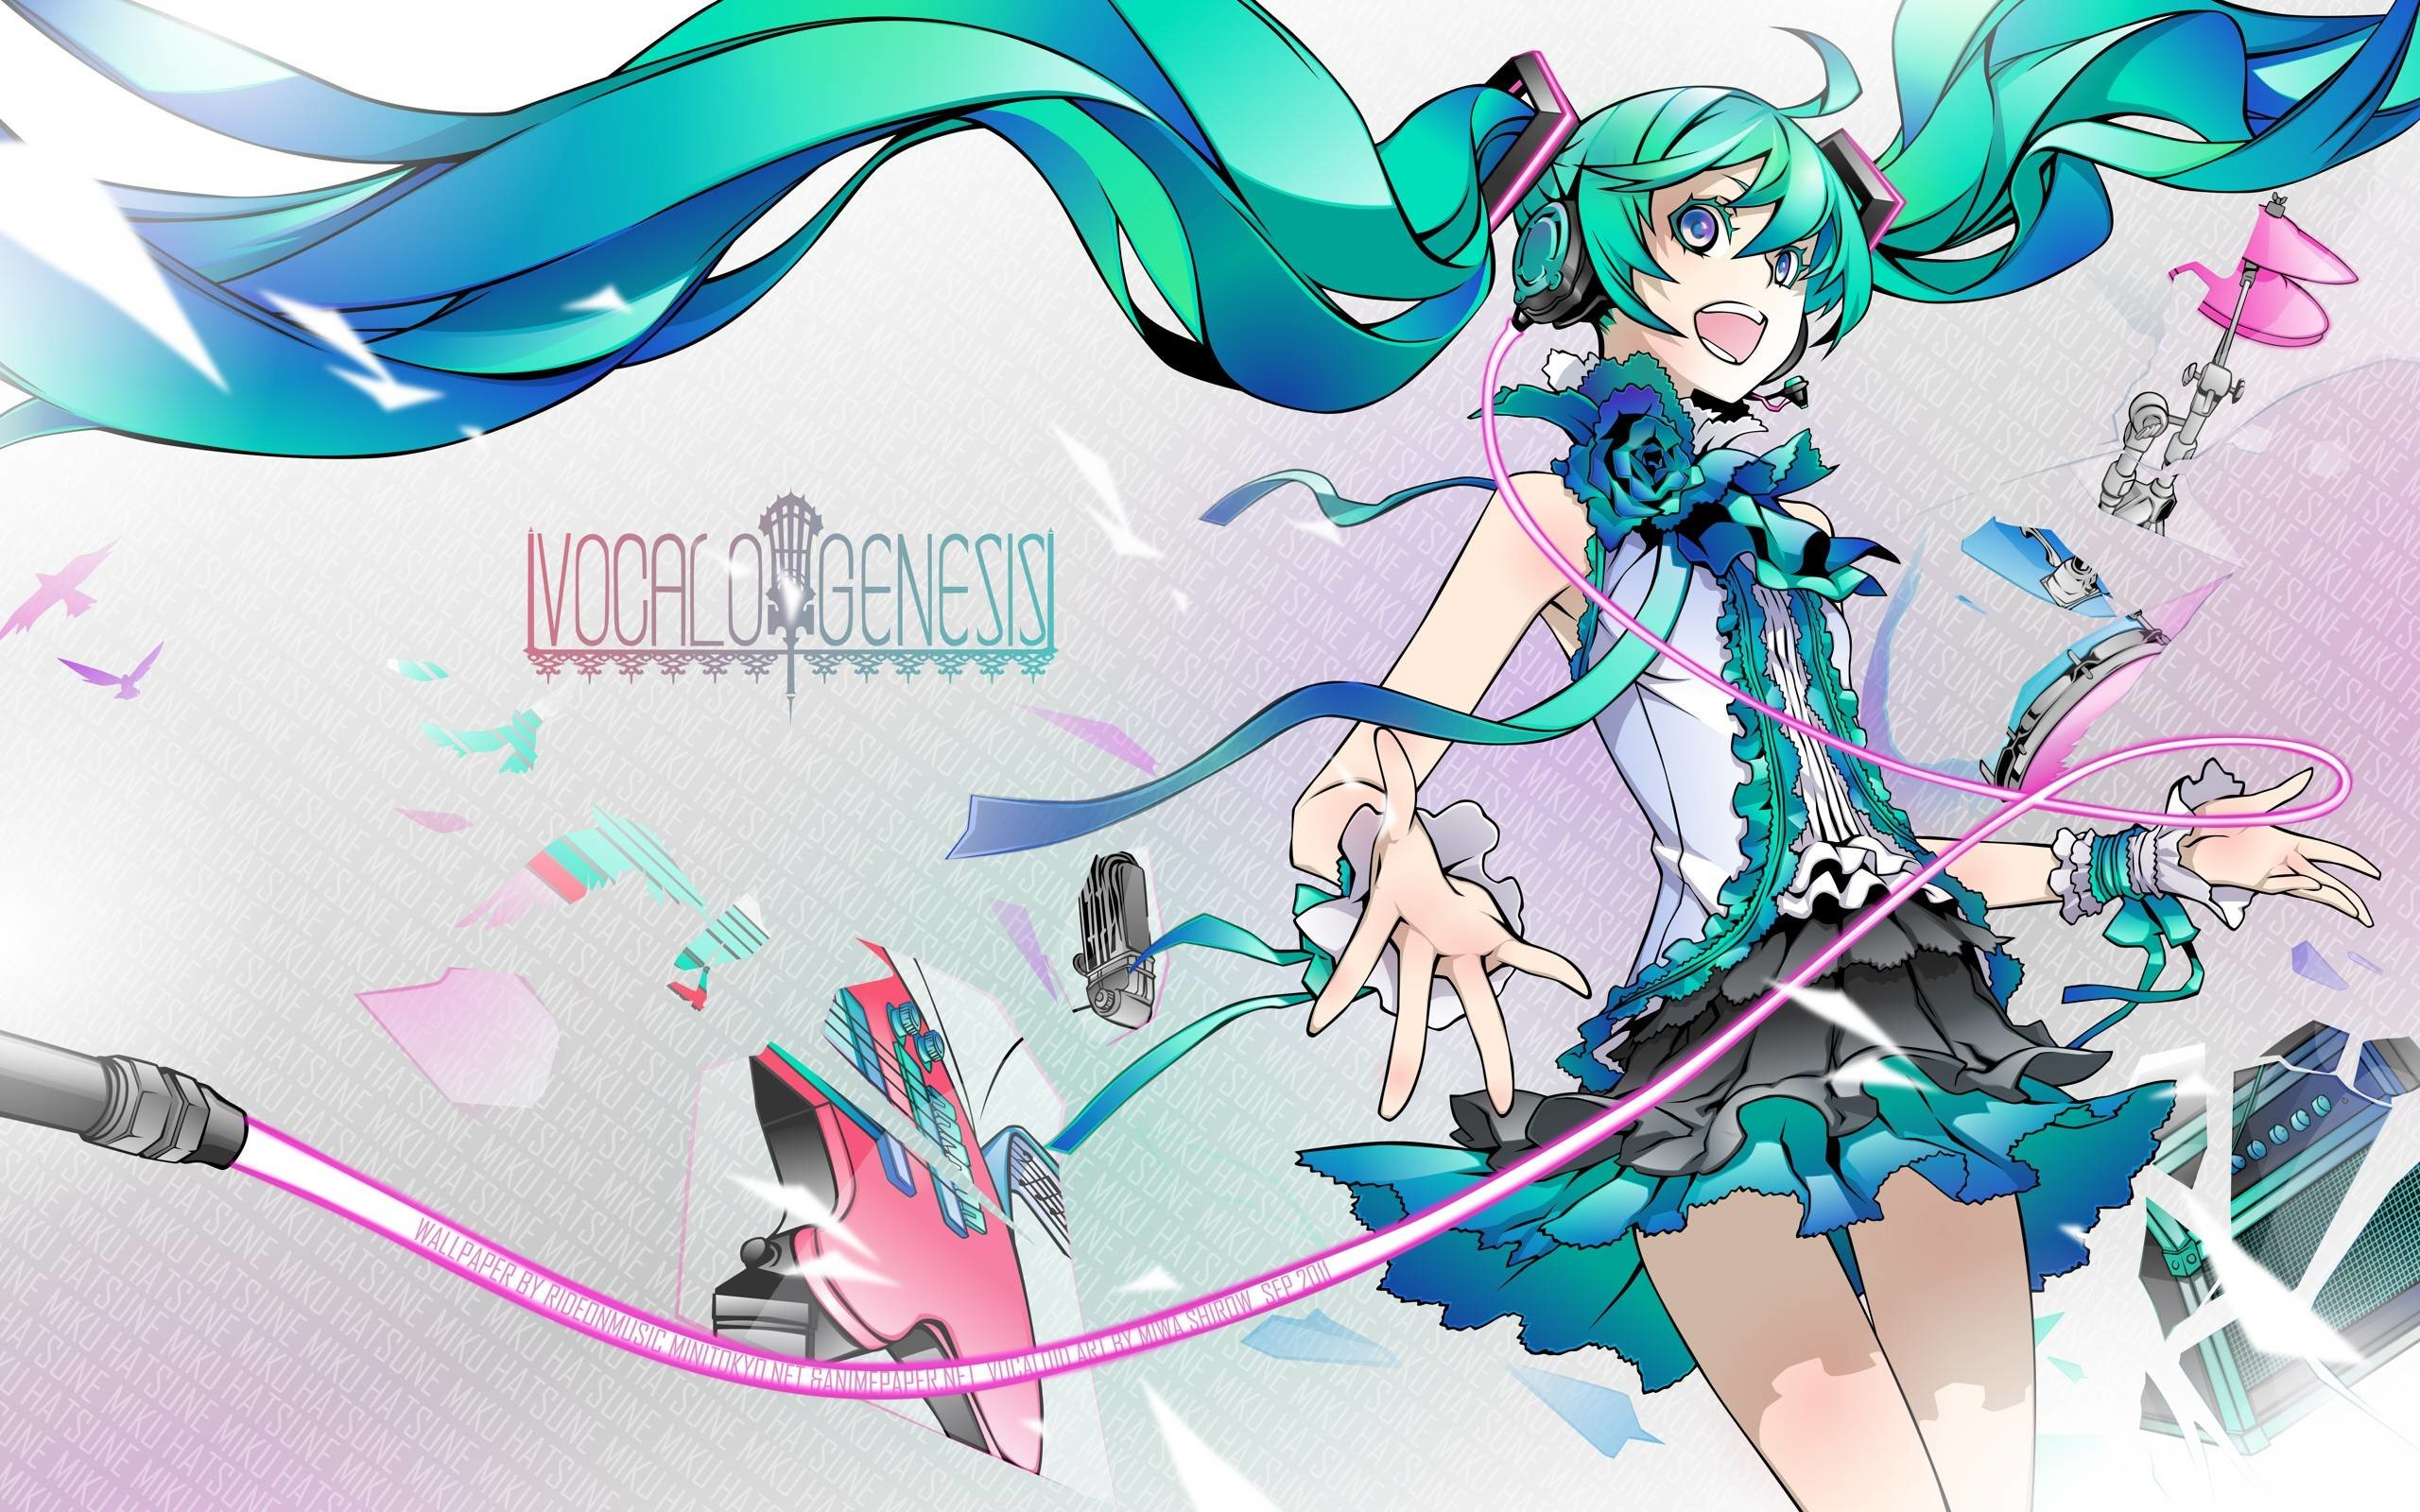 2560x1600 Free Genesis Vocaloid Wallpapers, Free Genesis Vocaloid HD .